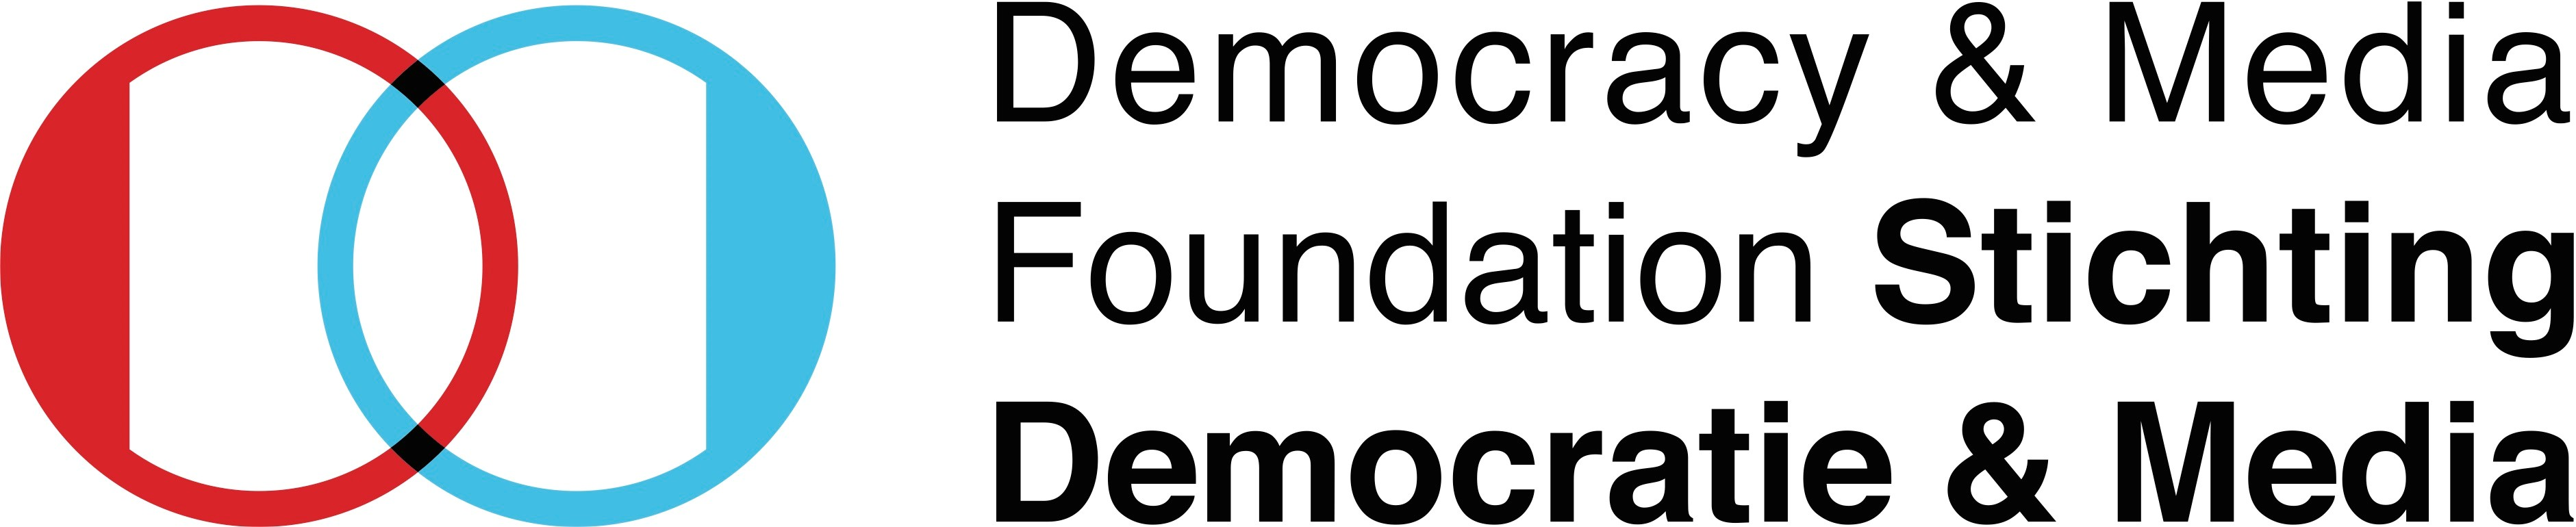 Democratie-en-media-logo